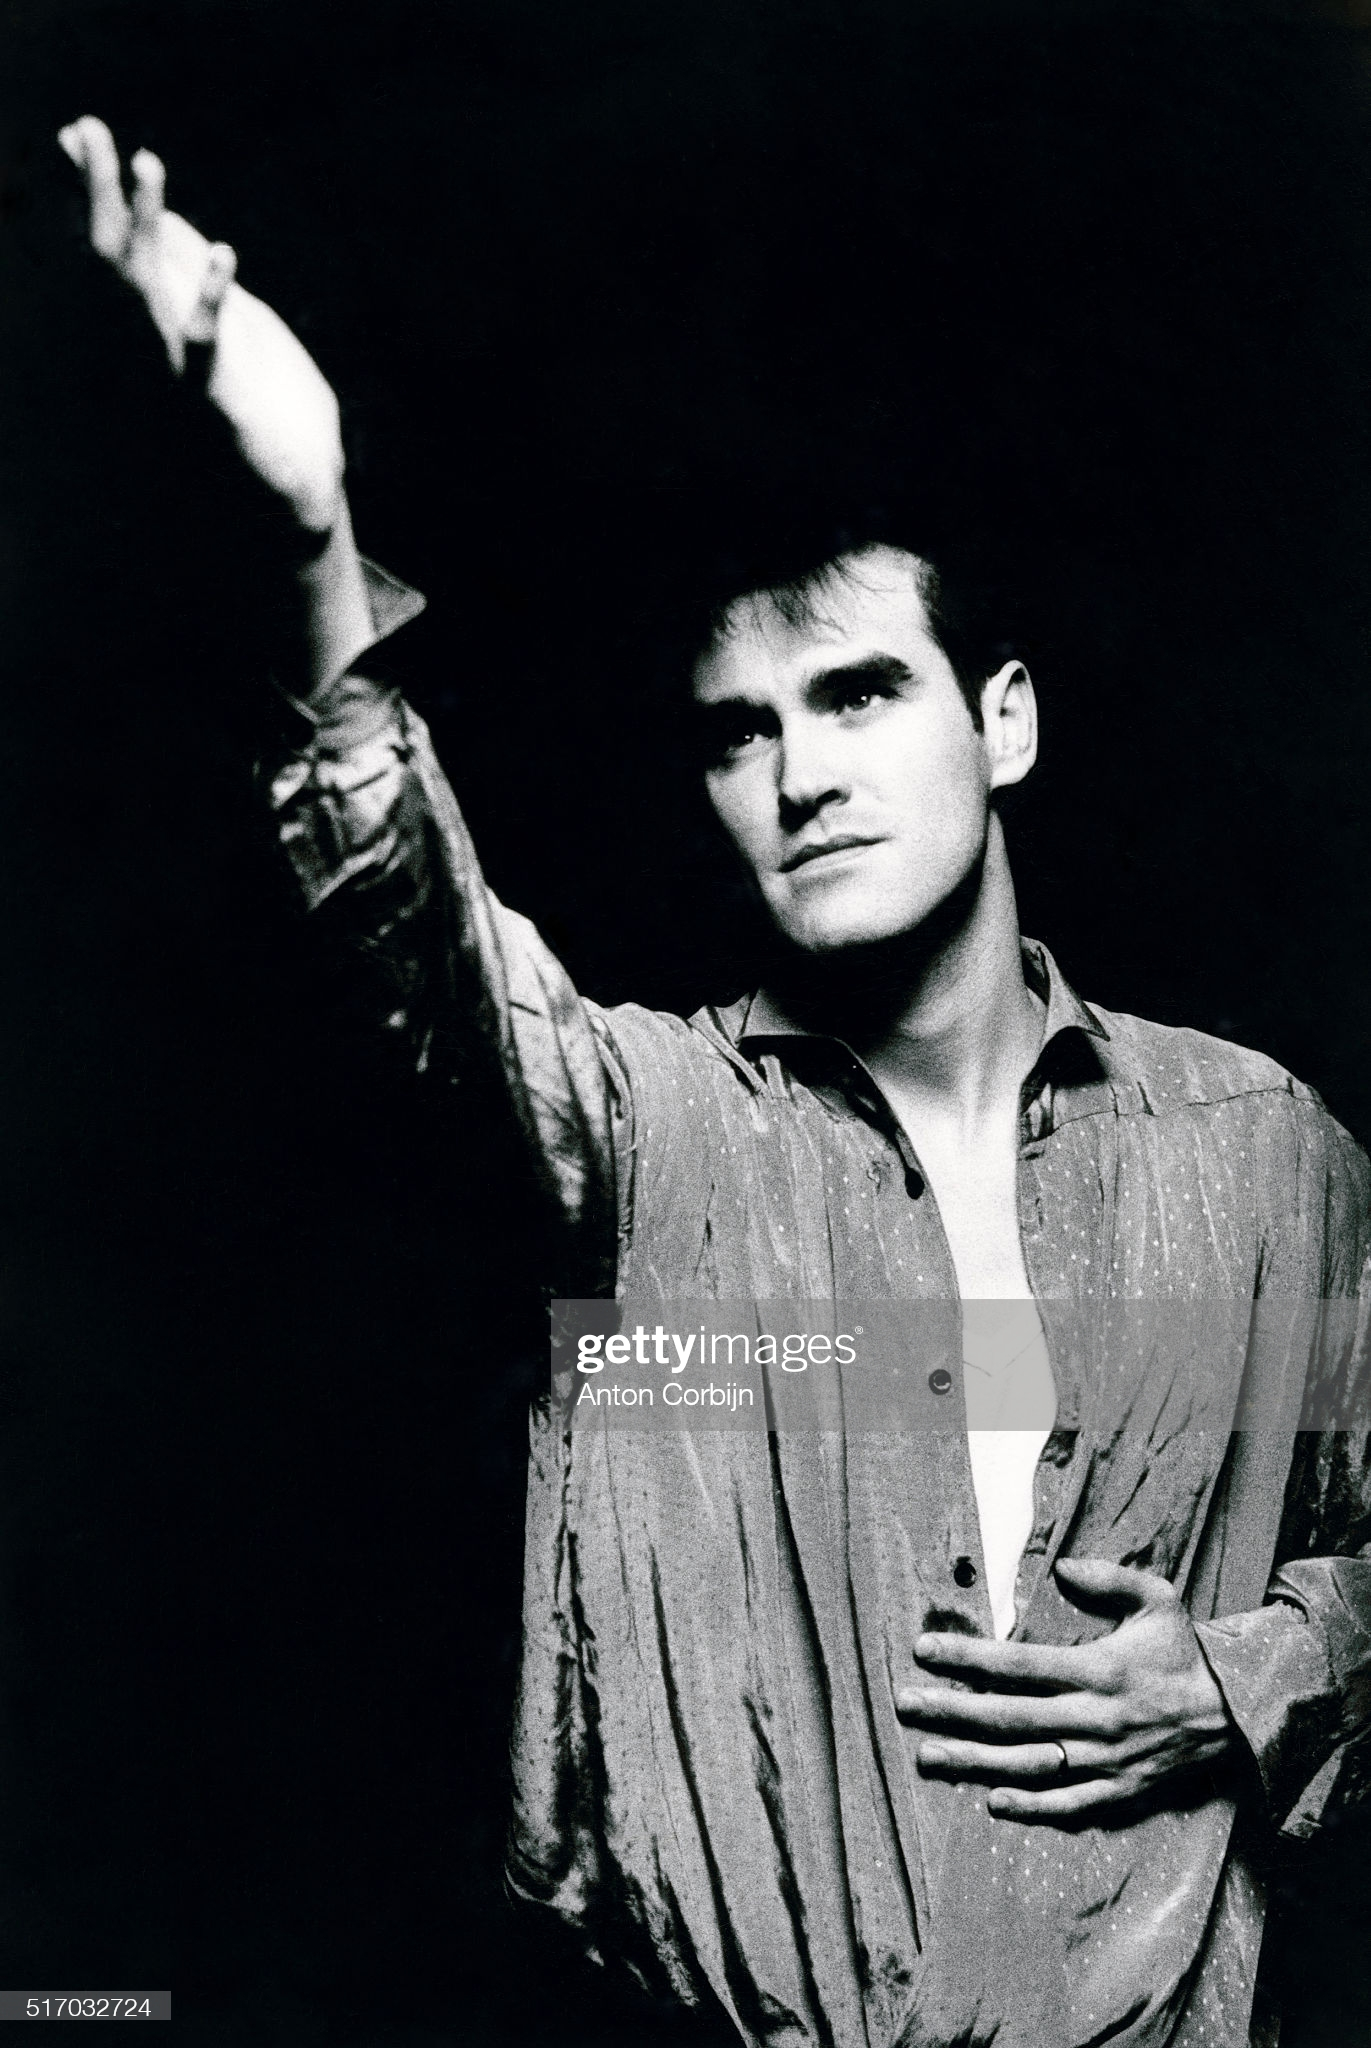 Morrissey January 23rd 1984 Liverpool.jpg